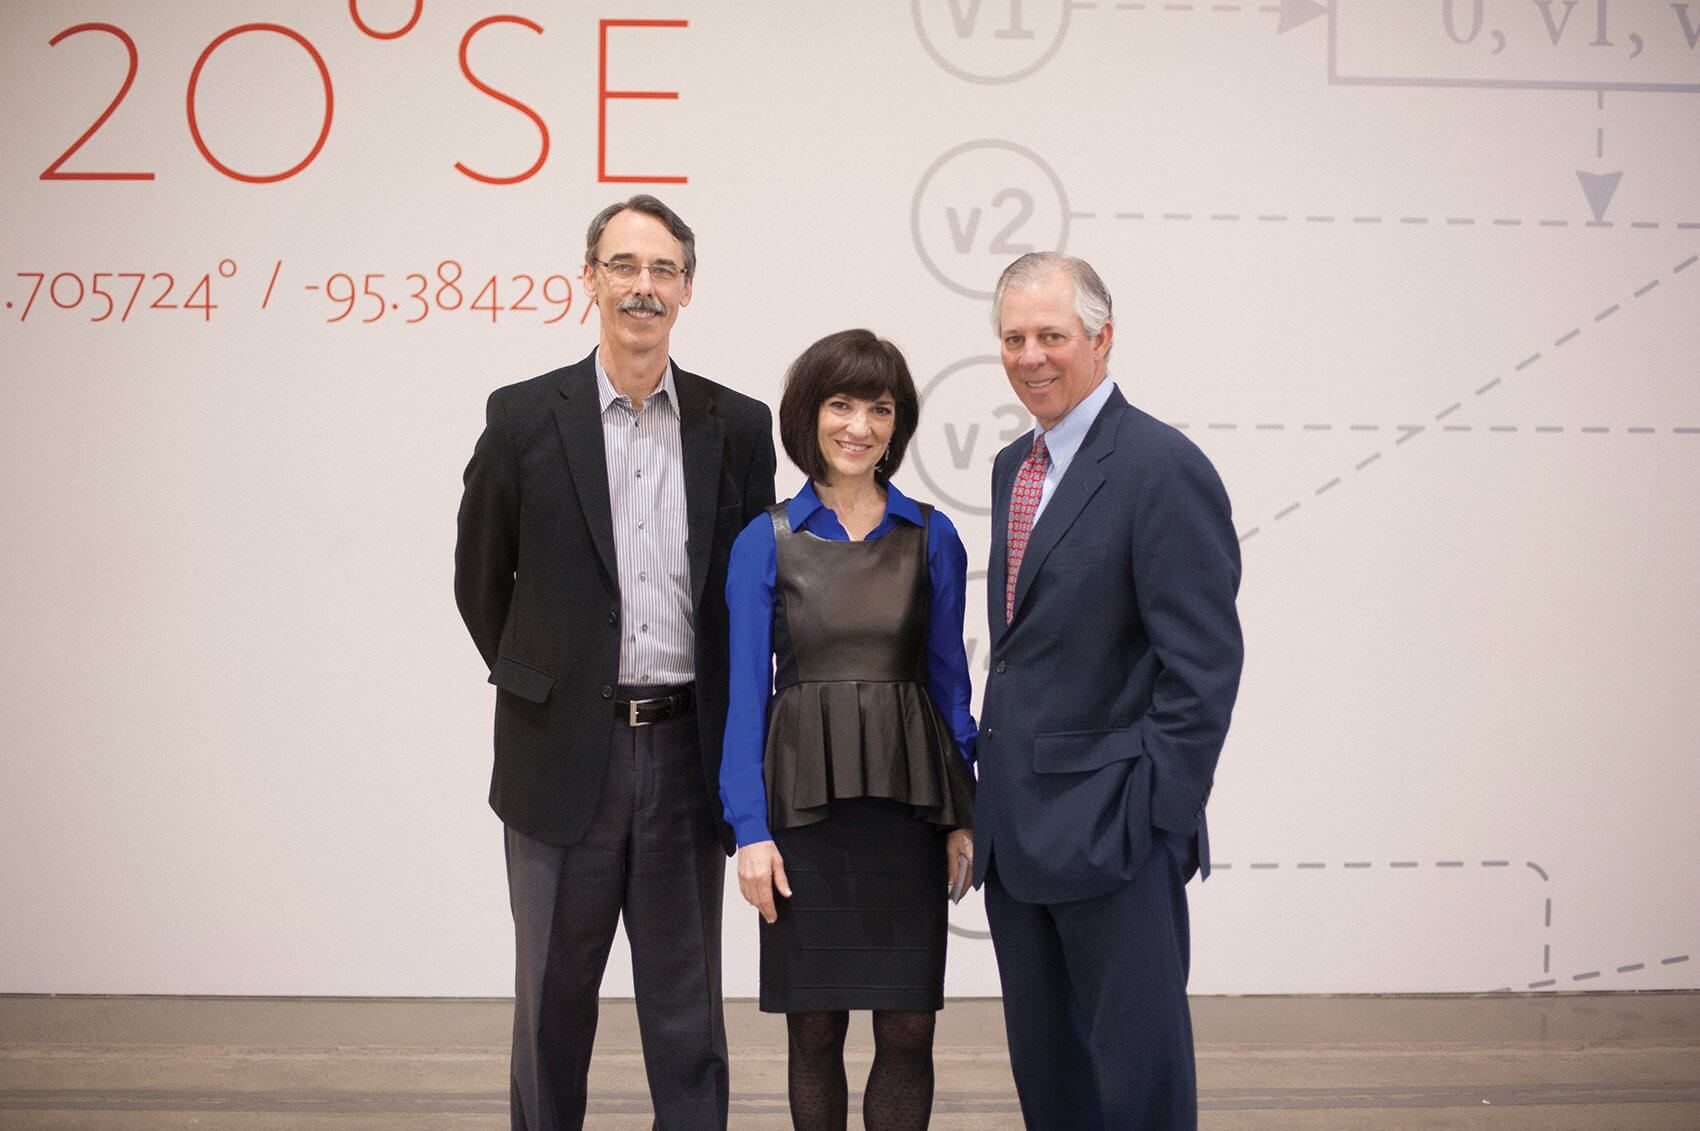 Clay Phillips, vice president of business development for LaunchPad Central, Andrea Kates, chief executive officer of LaunchPad Central, and Robert C. Robbins, M.D., president and chief executive officer of the Texas Medical Center.